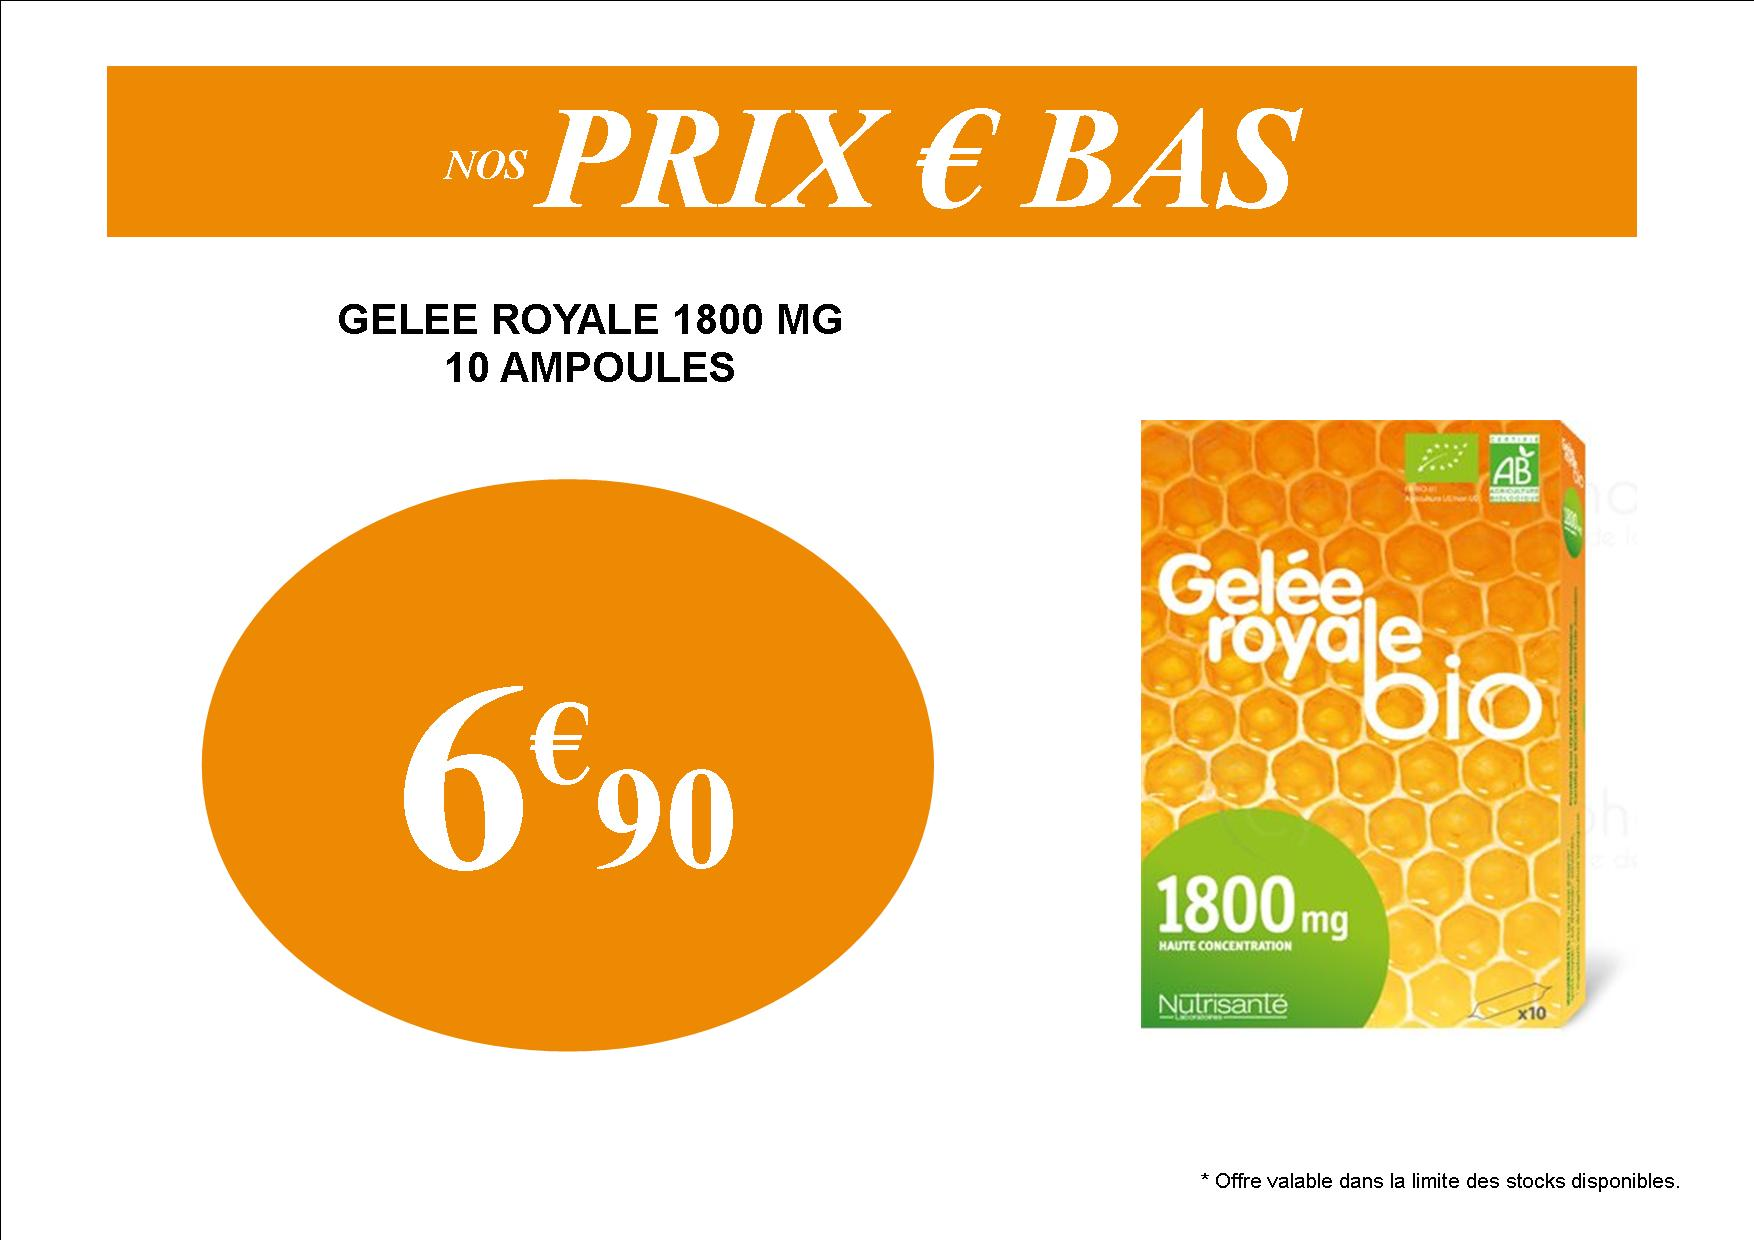 GELEE ROYALE PROMOTION PAS CHER 6.90€